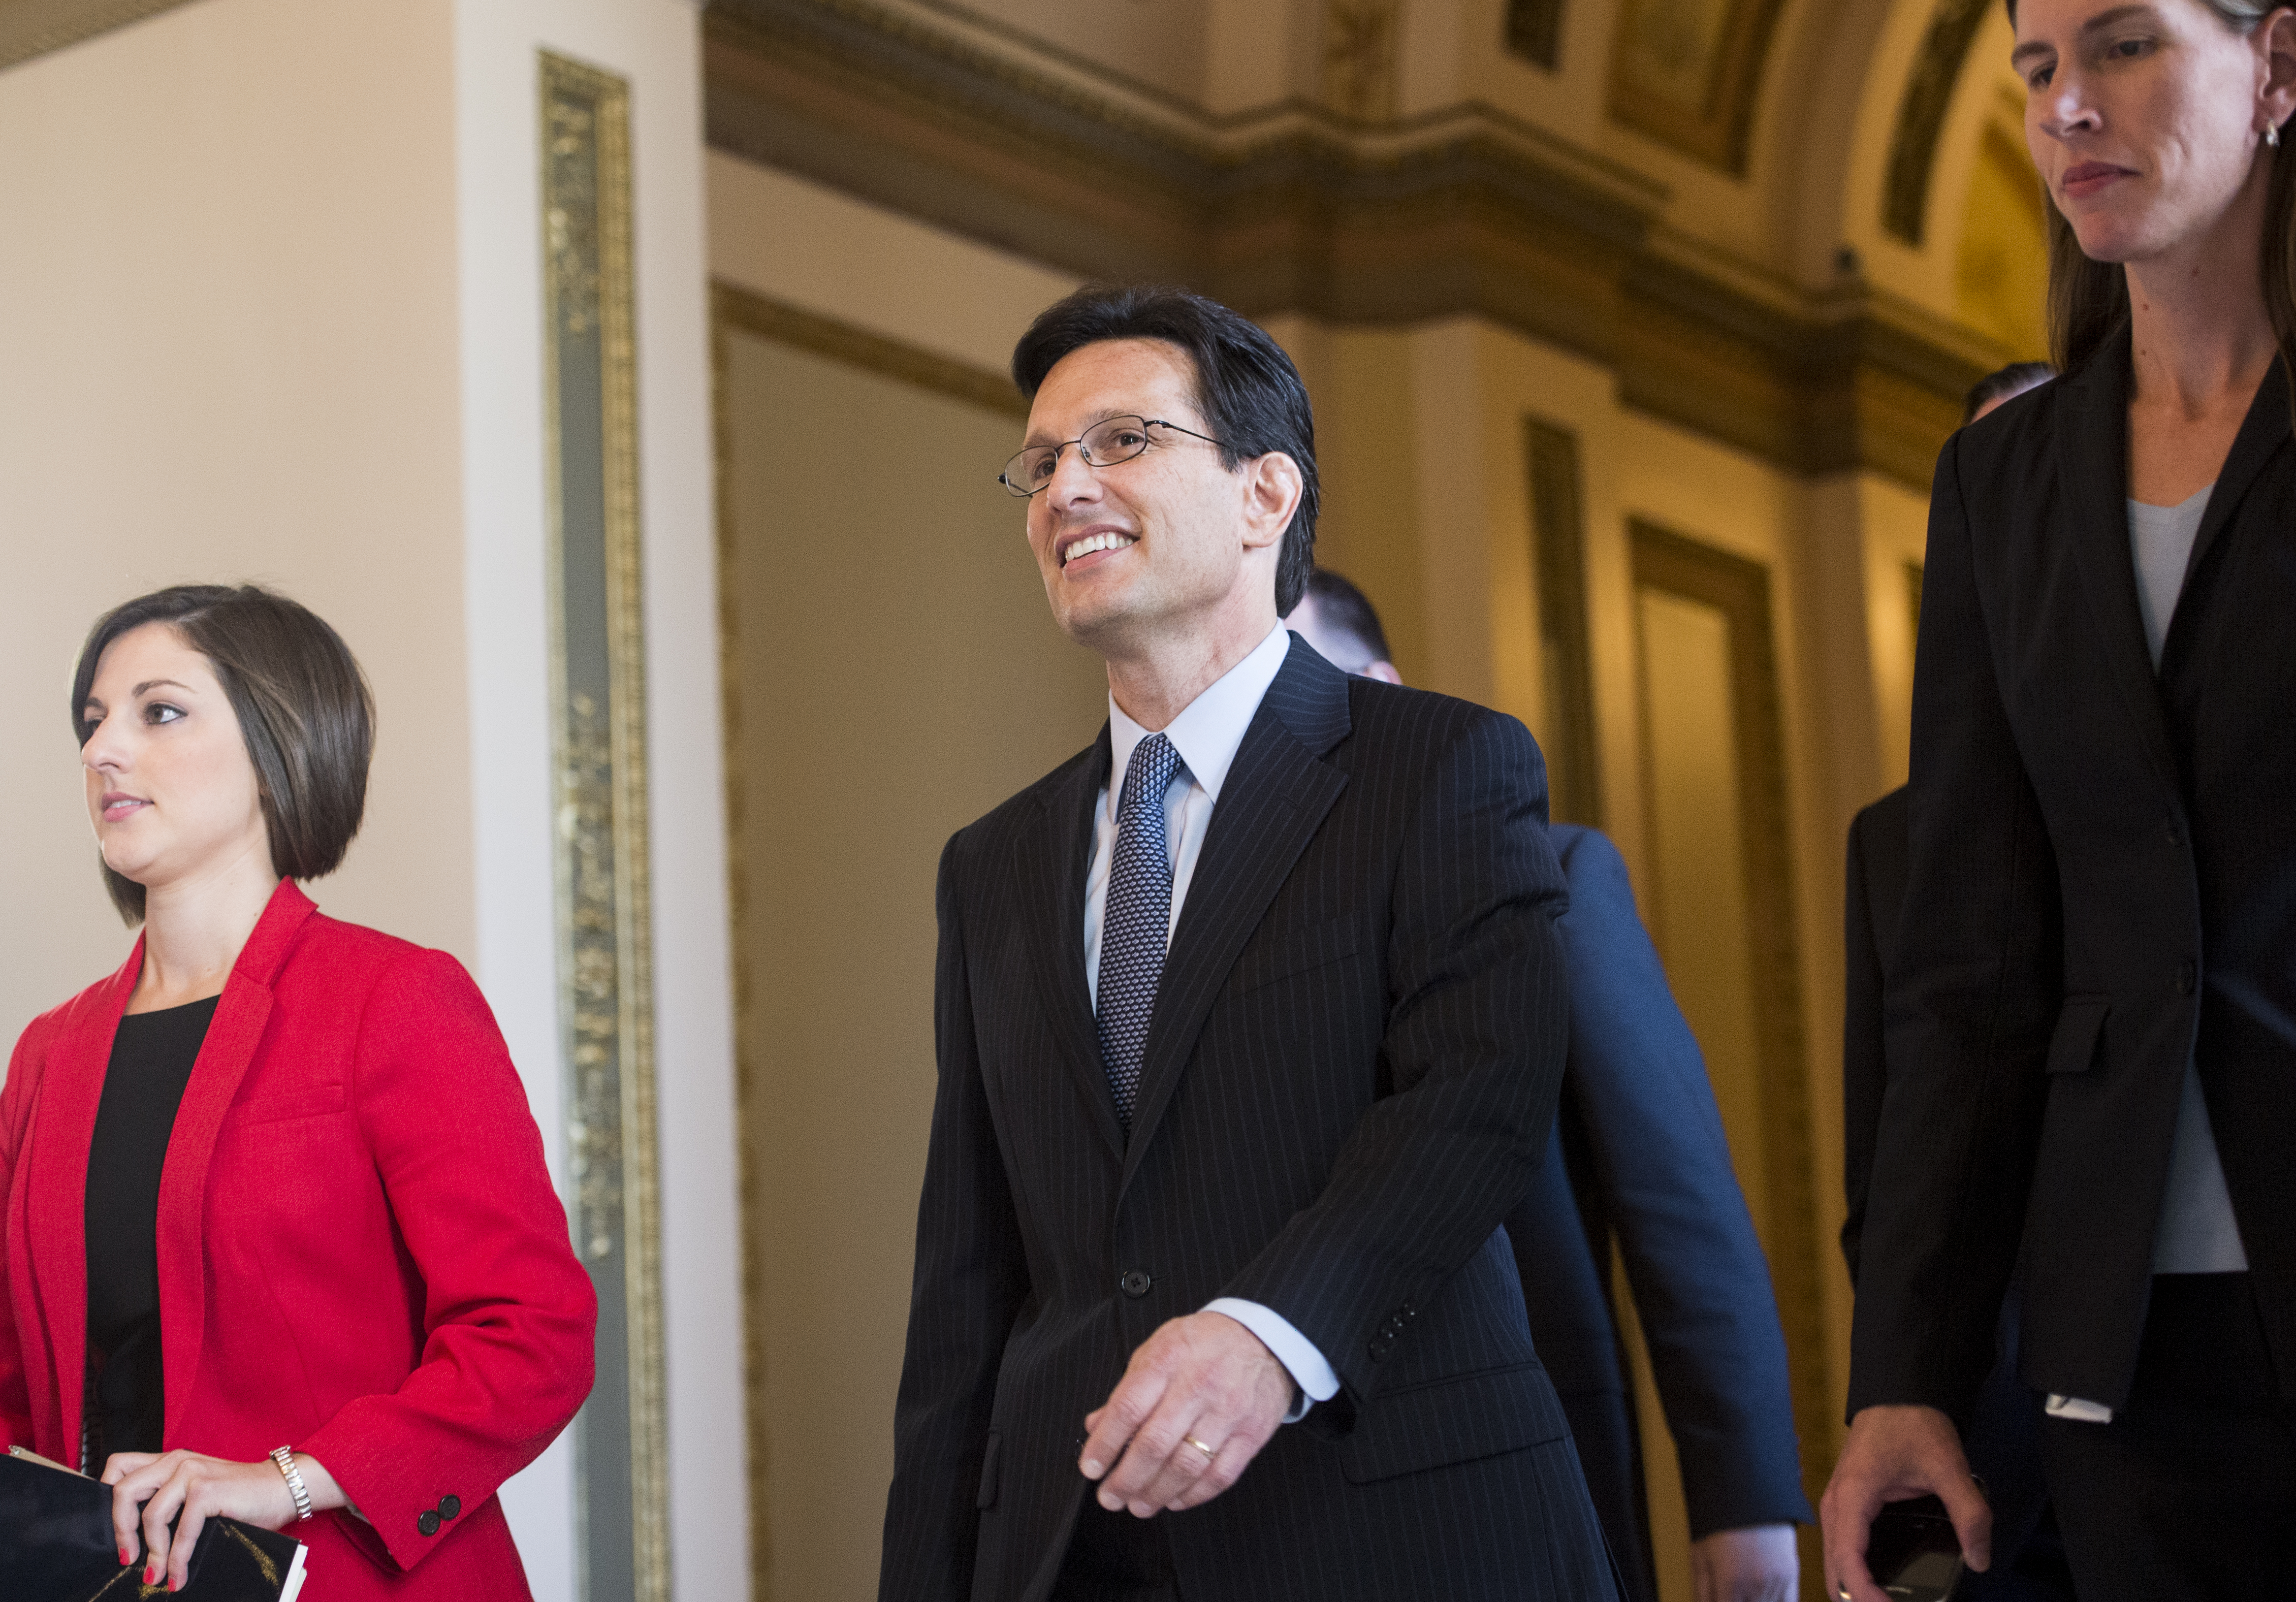 House Majority Leader Eric Cantor, R-Va., walks from the House floor after delivering his final speech as Majority Leader on Thursday, July 31, 2014.